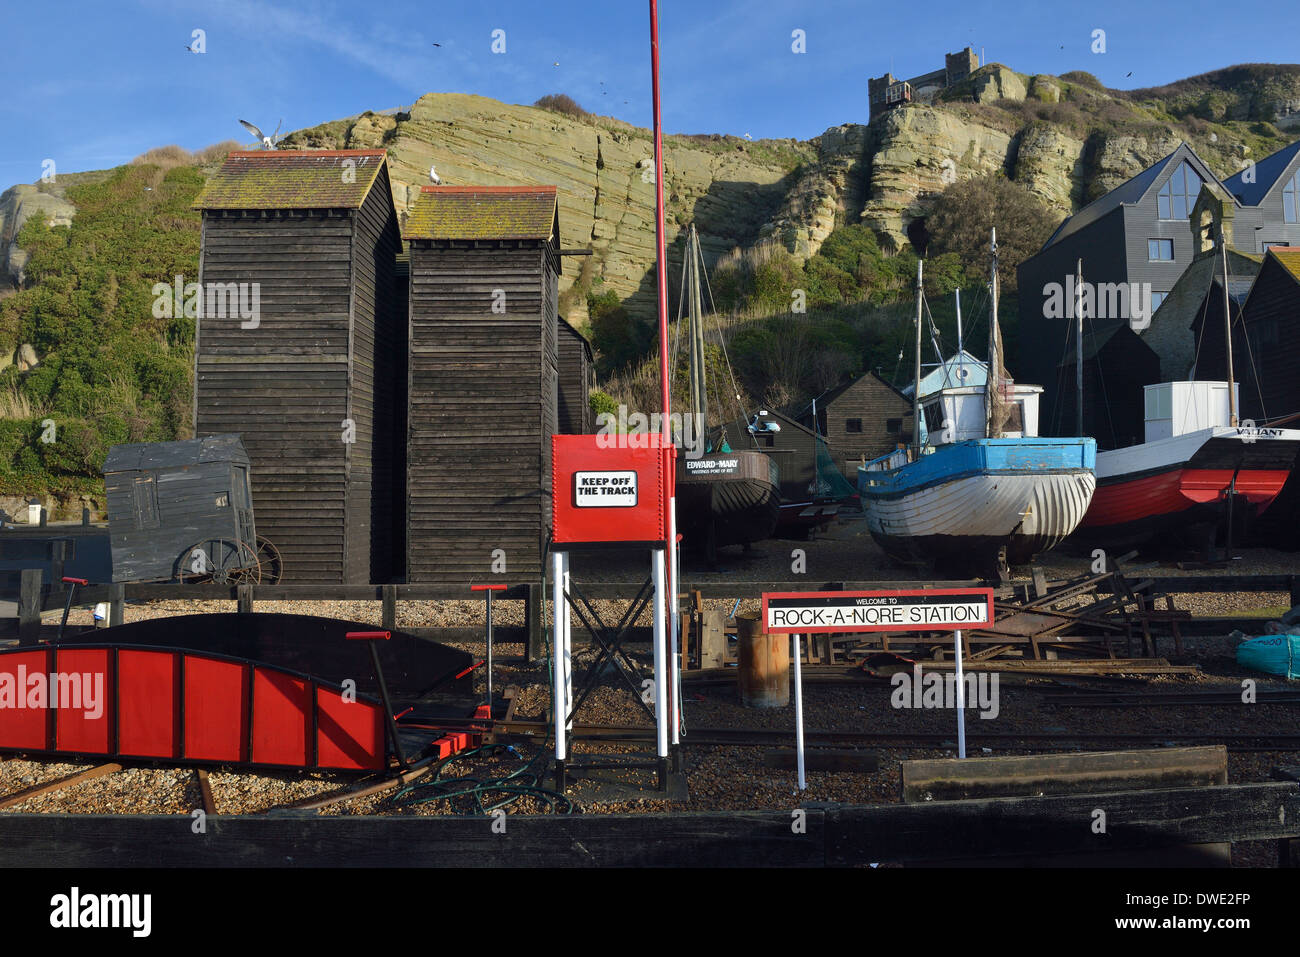 Rock-a-nore miniature railway station, fishing net huts, boats and east hill. Hastings - Stock Image